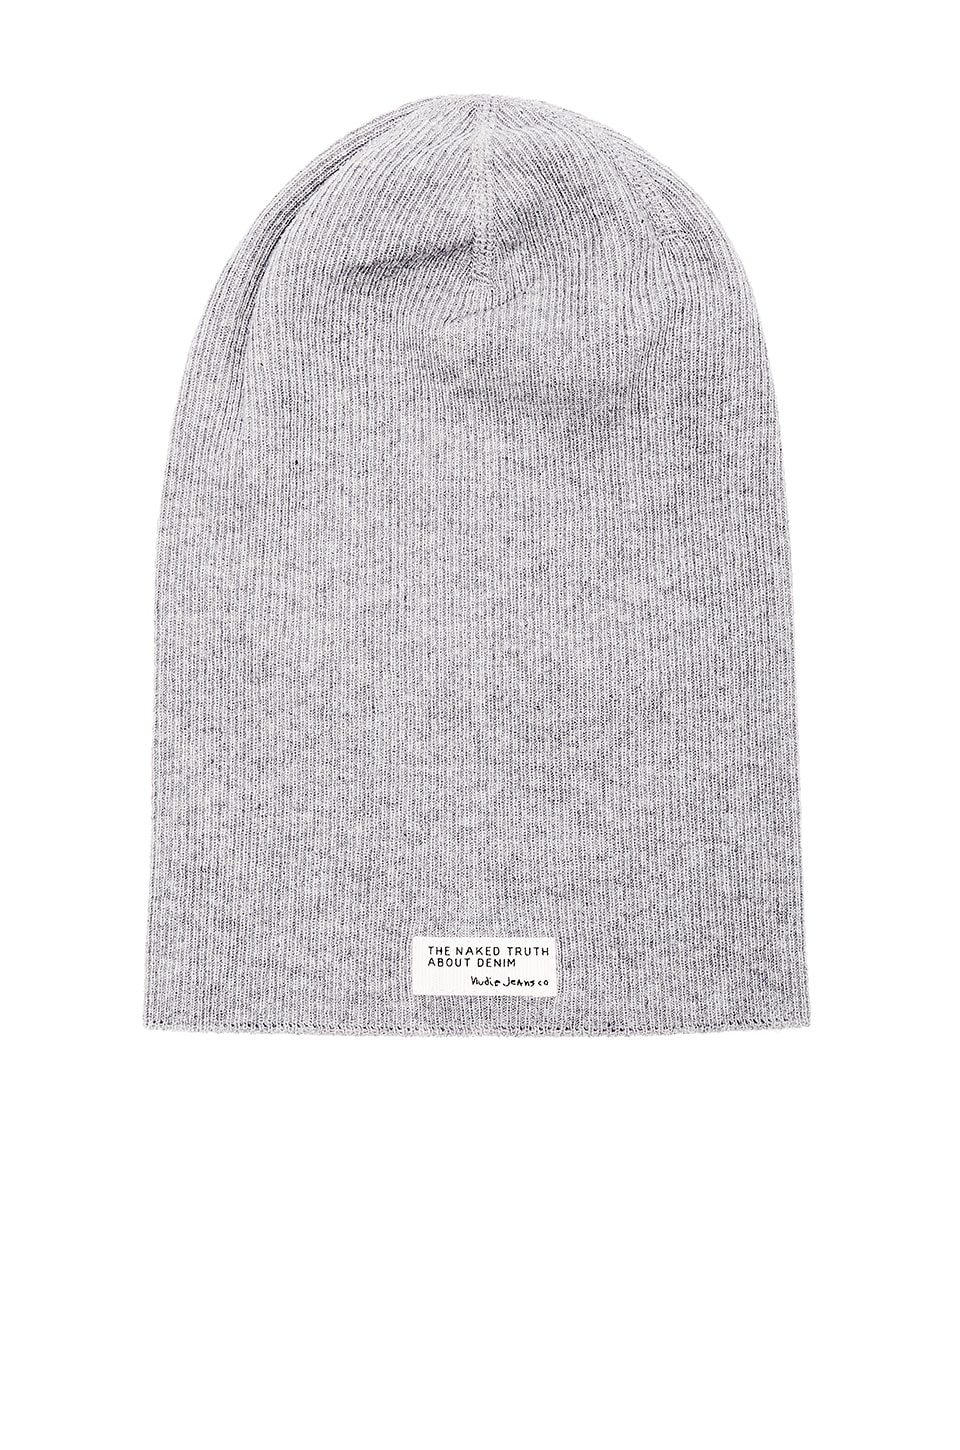 Nudie Jeans Hannesson Beanie in Grey